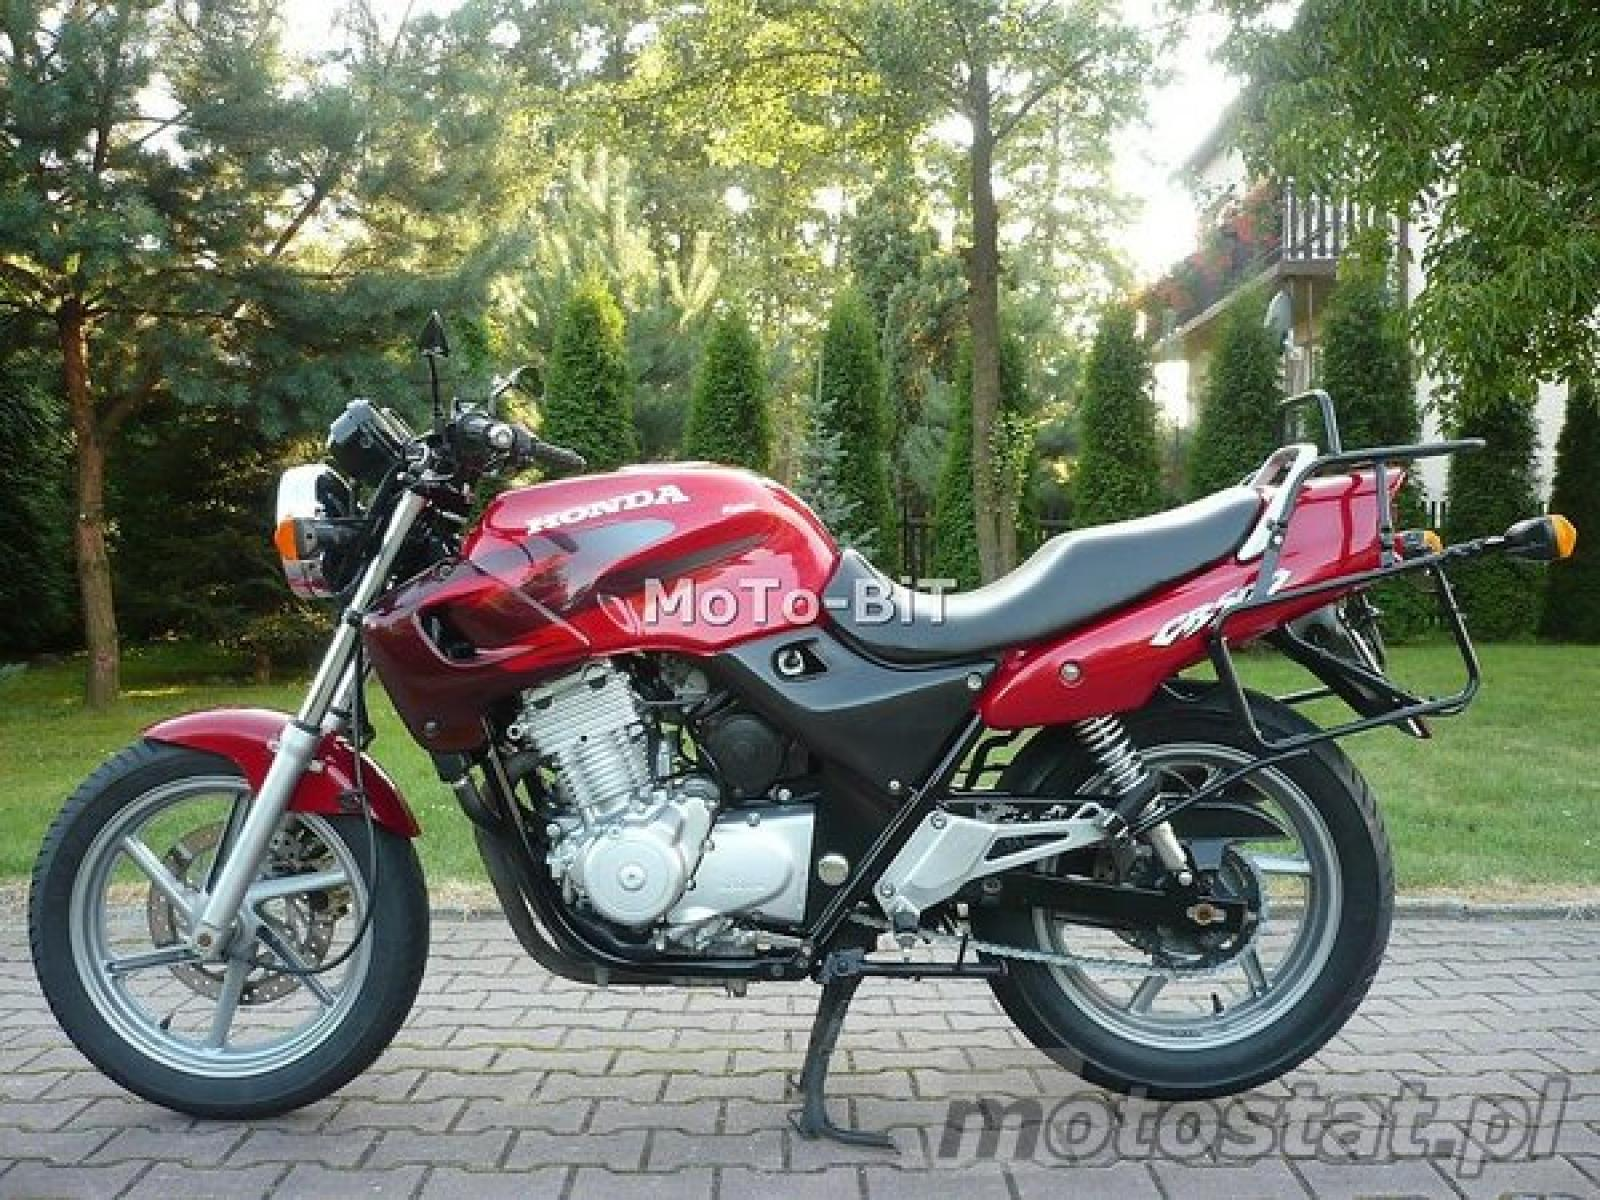 Review of Honda CB 500 1998: pictures, live photos